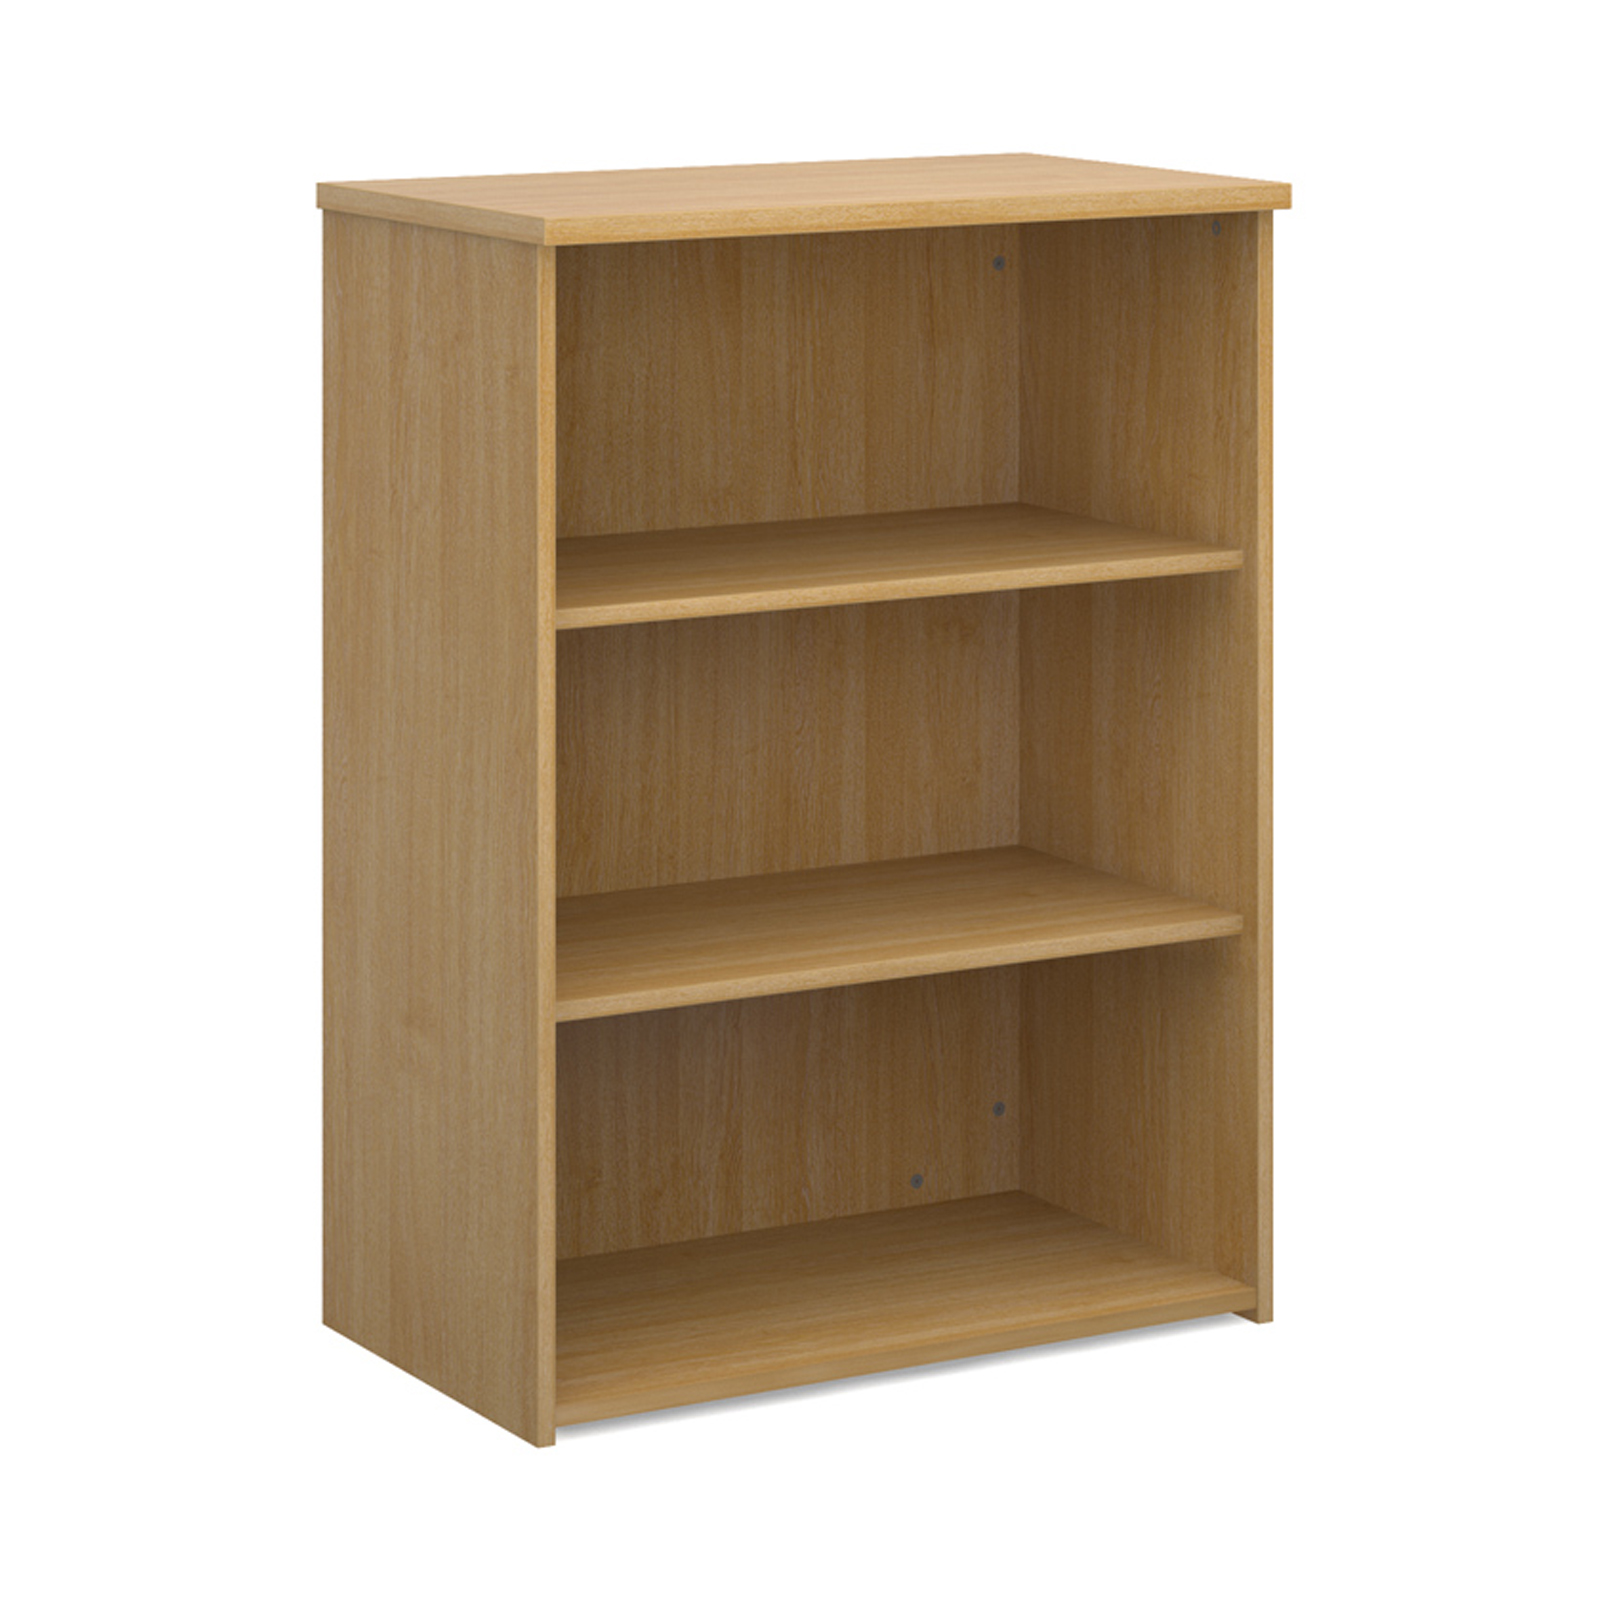 Universal bookcase 1090mm high with 2 shelves - oak